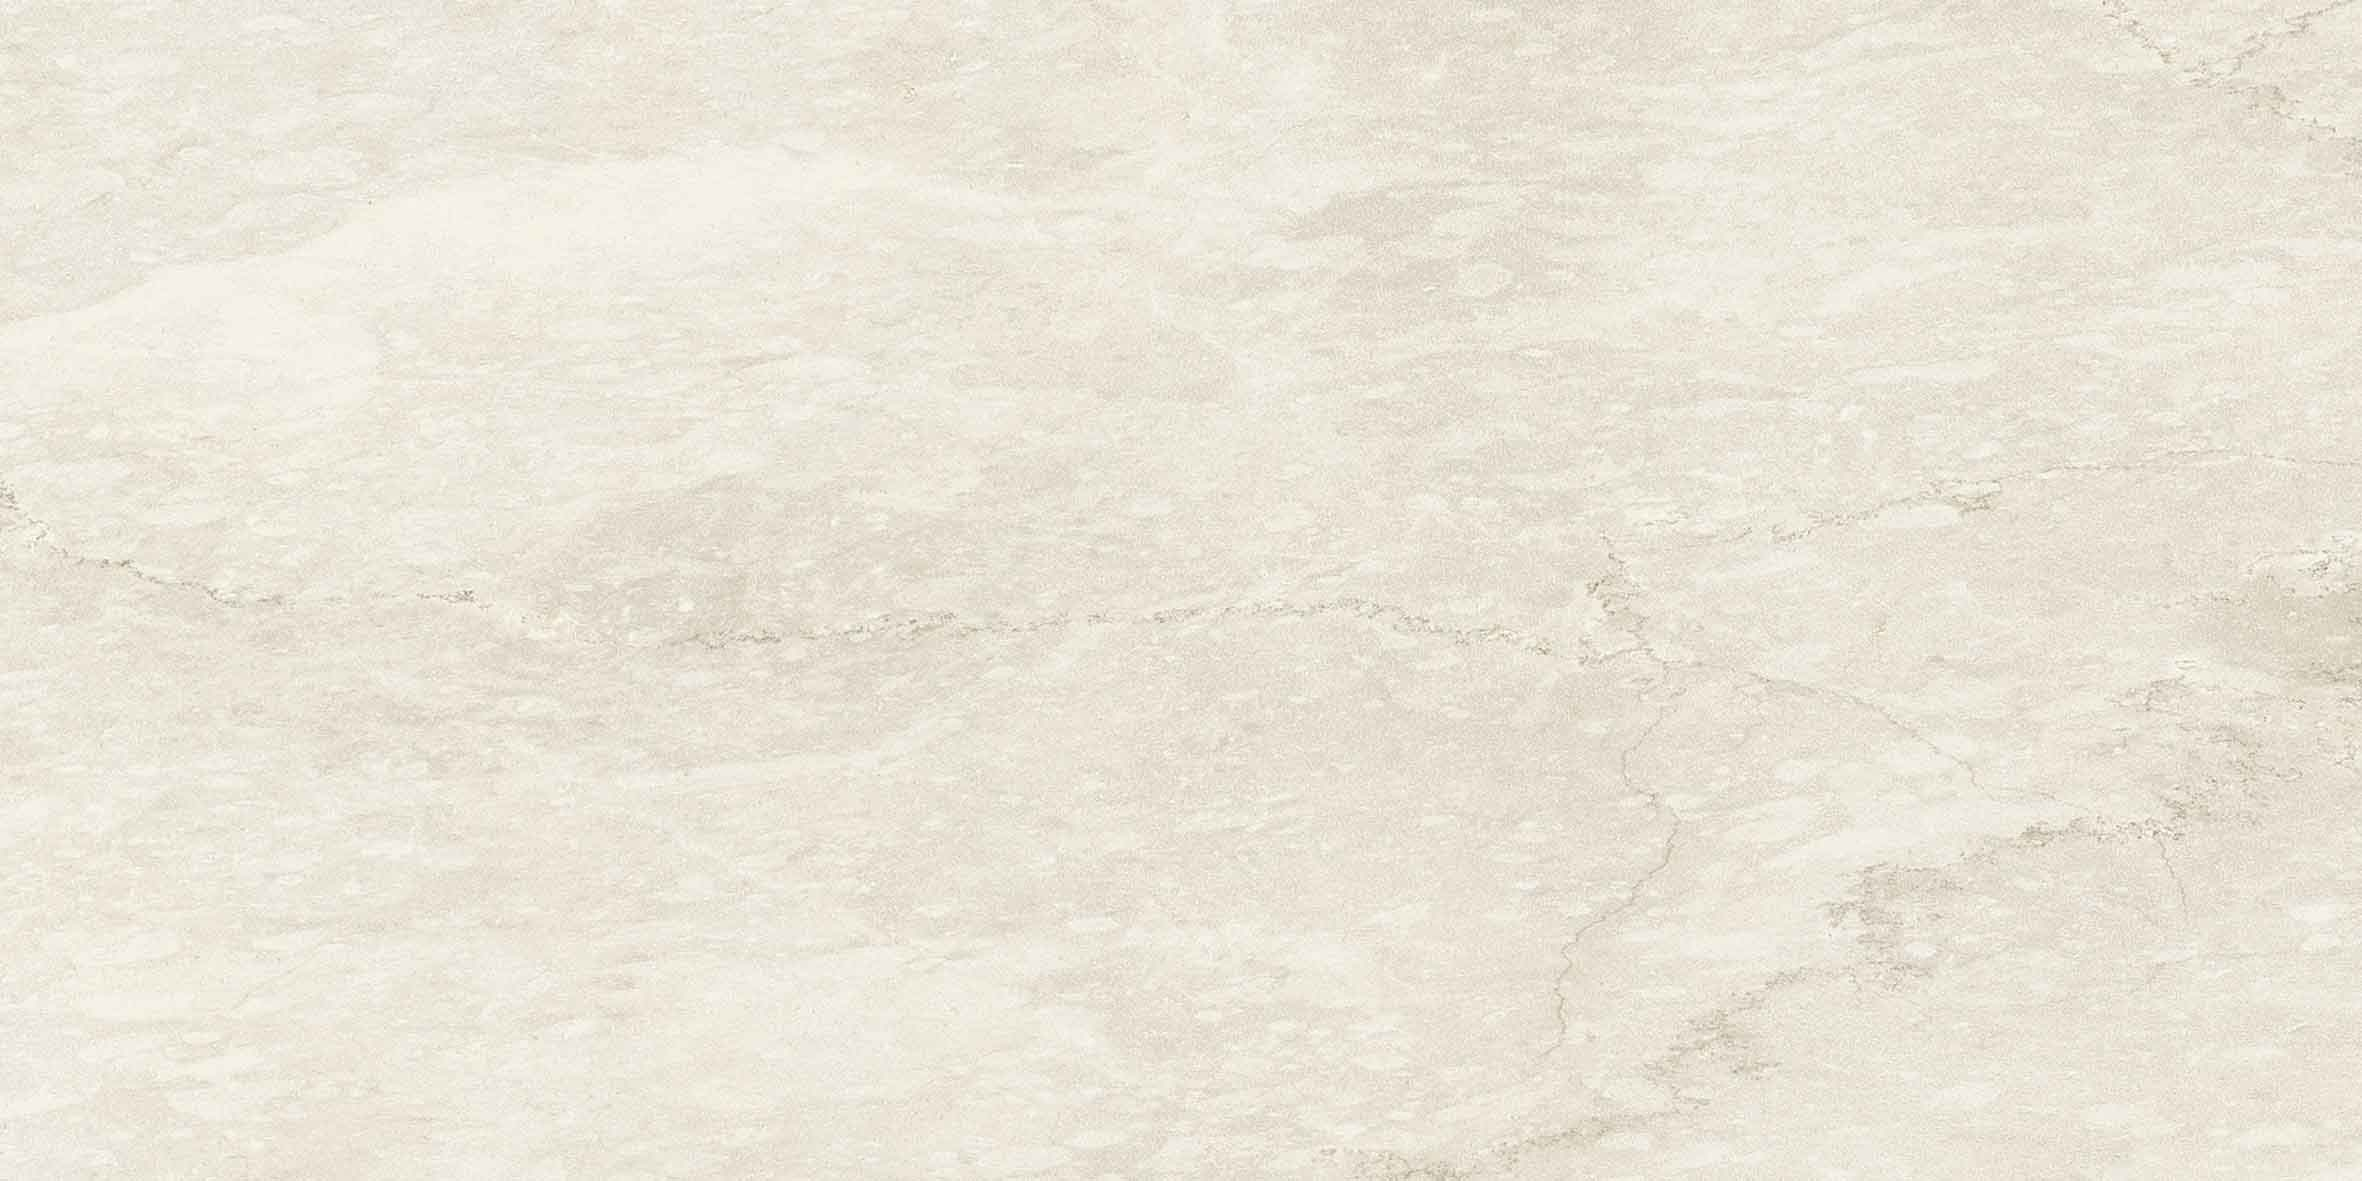 Antique Marble Imperial Marble 04 Matte 10mm 60 x 120